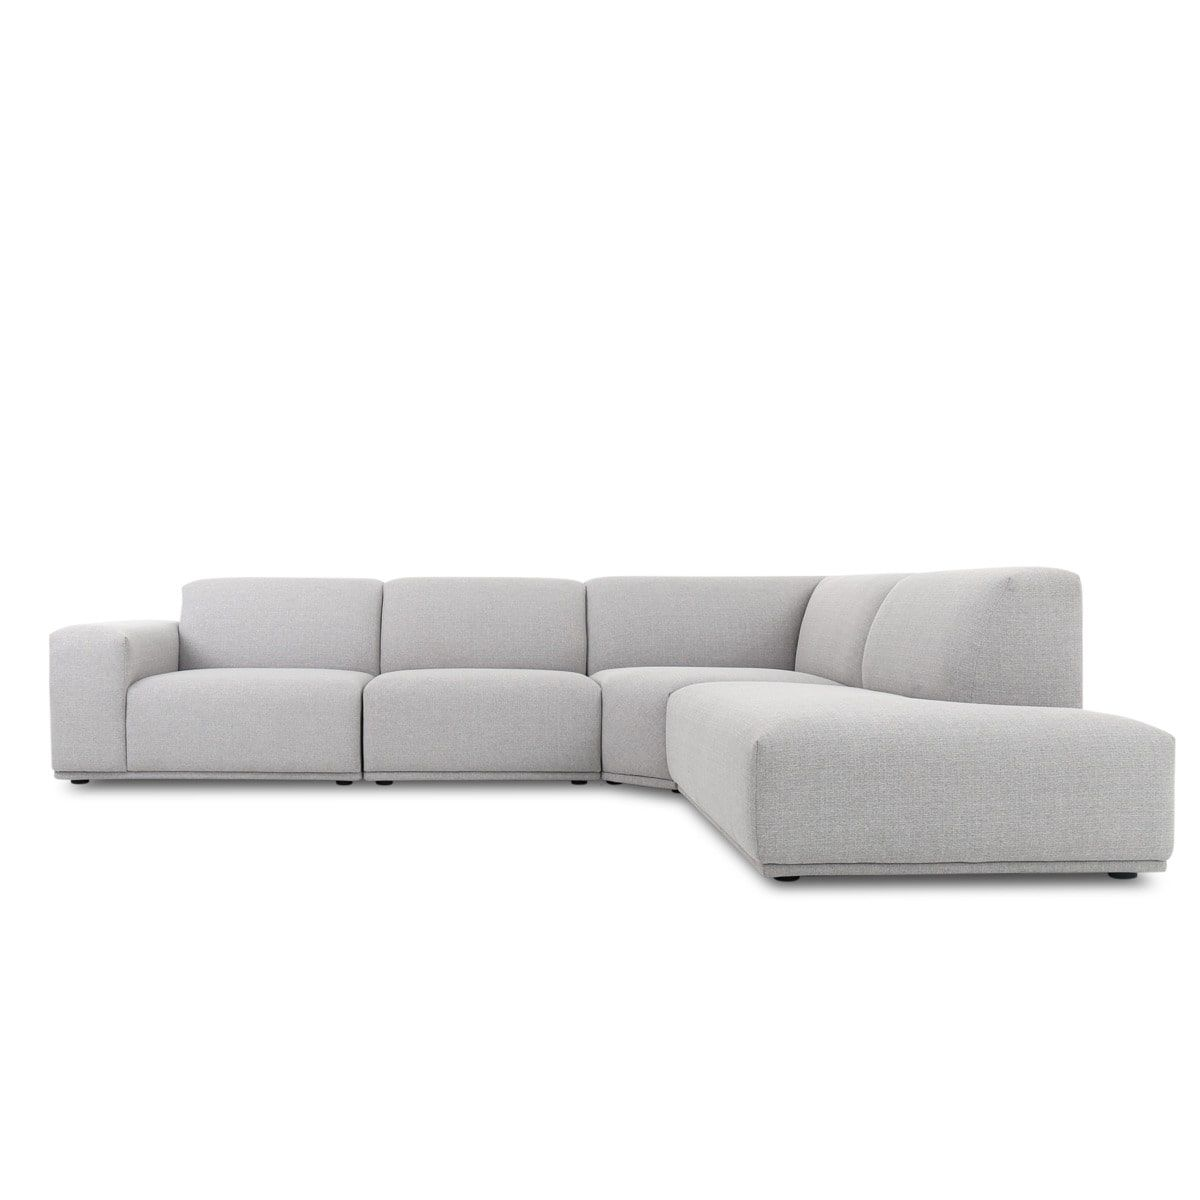 Todd Extended Sectional Chaise Sofa Modern Gray Fabric 111